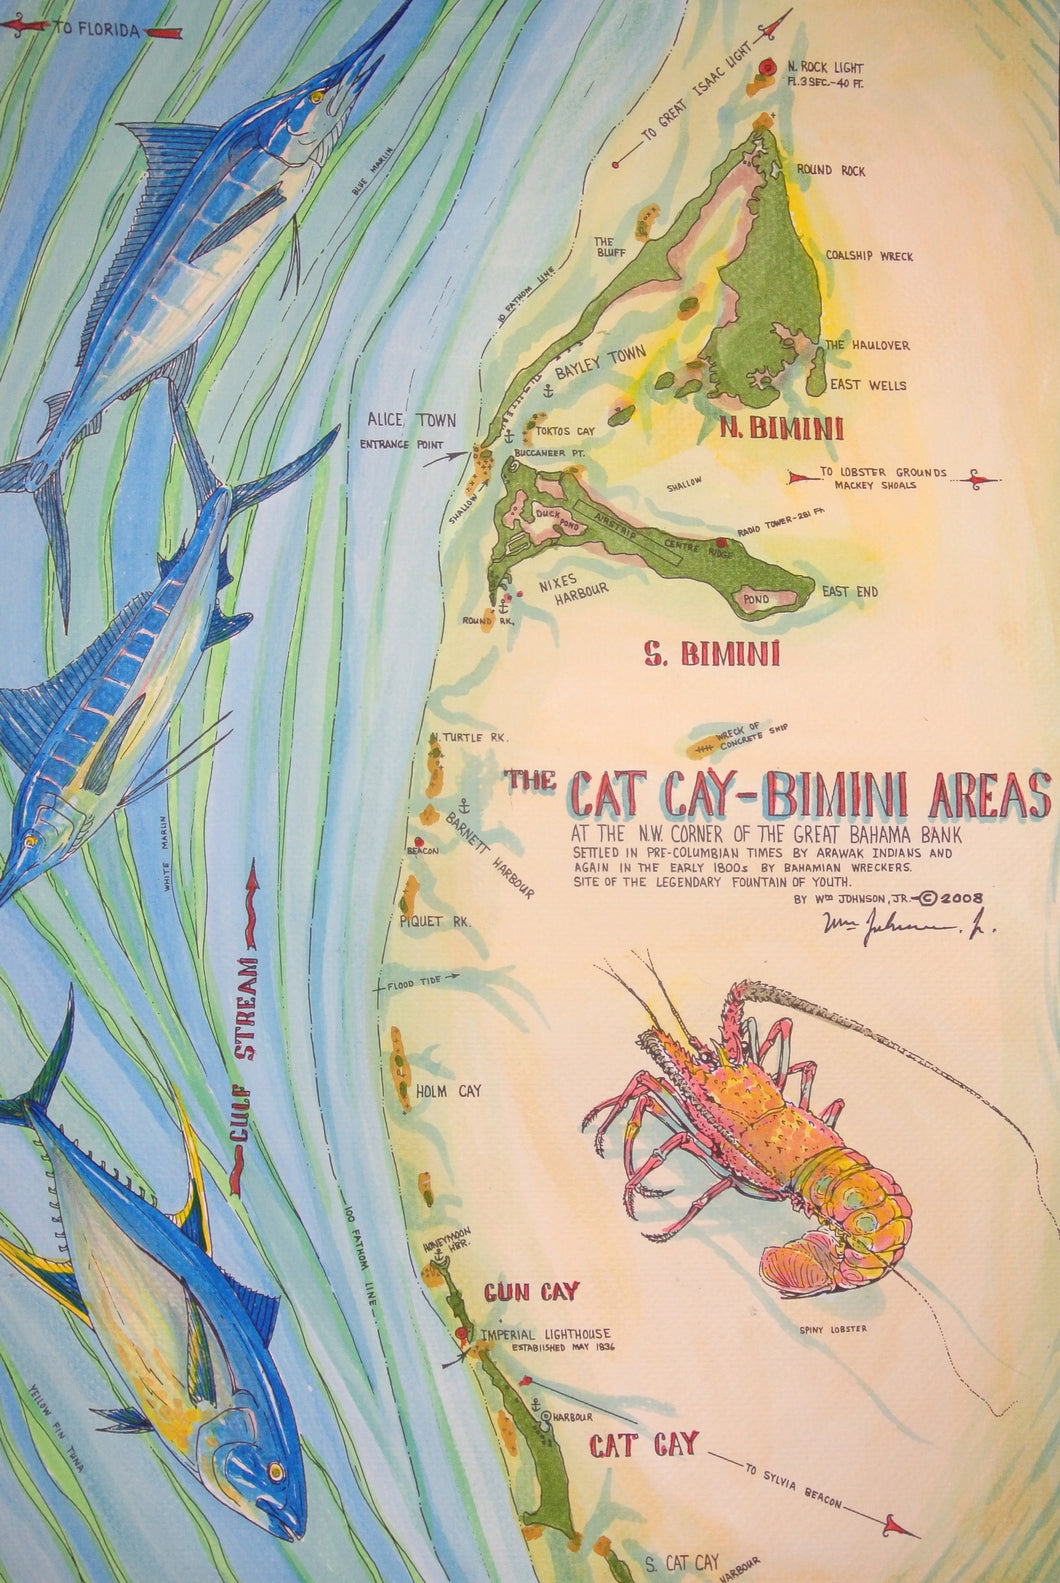 Map of Cat Cay - Bimini